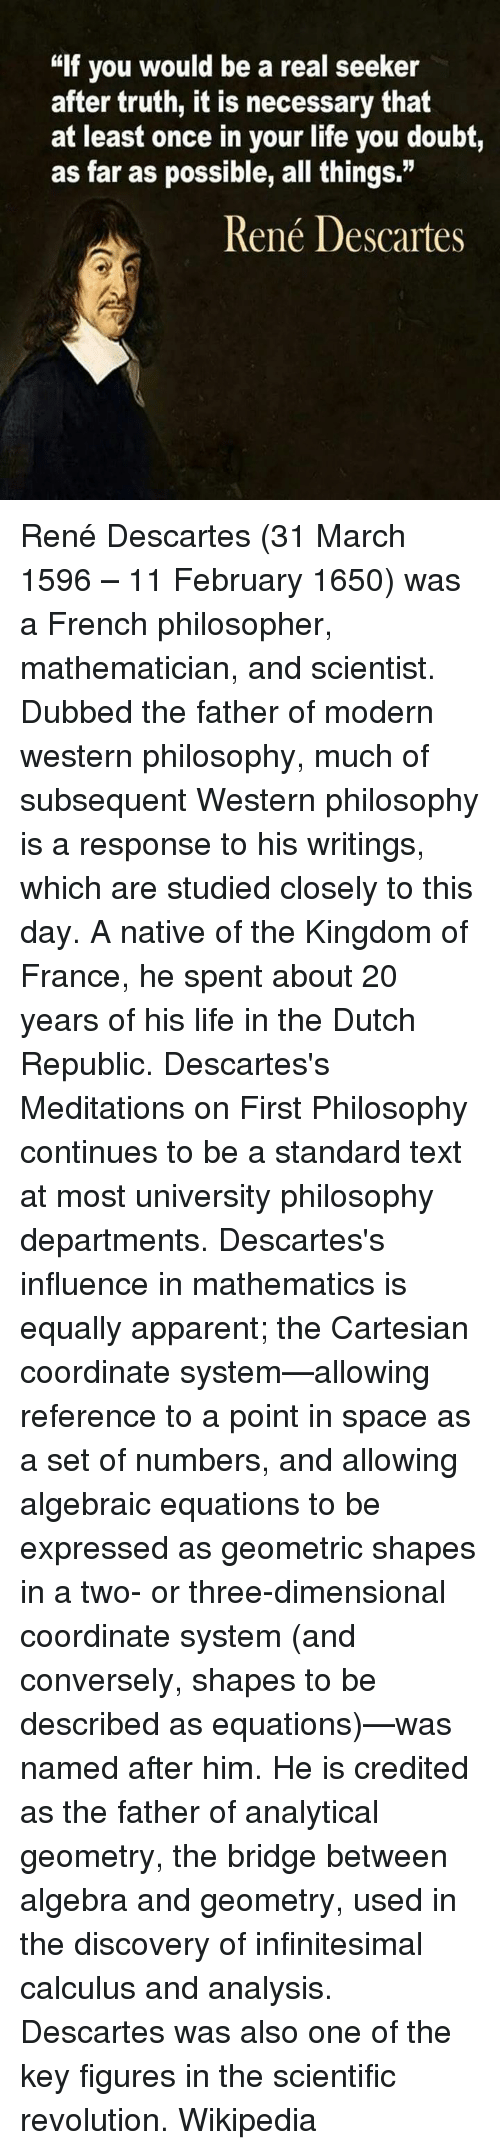 rene descartes system of universal doubt in meditations on first philosophy